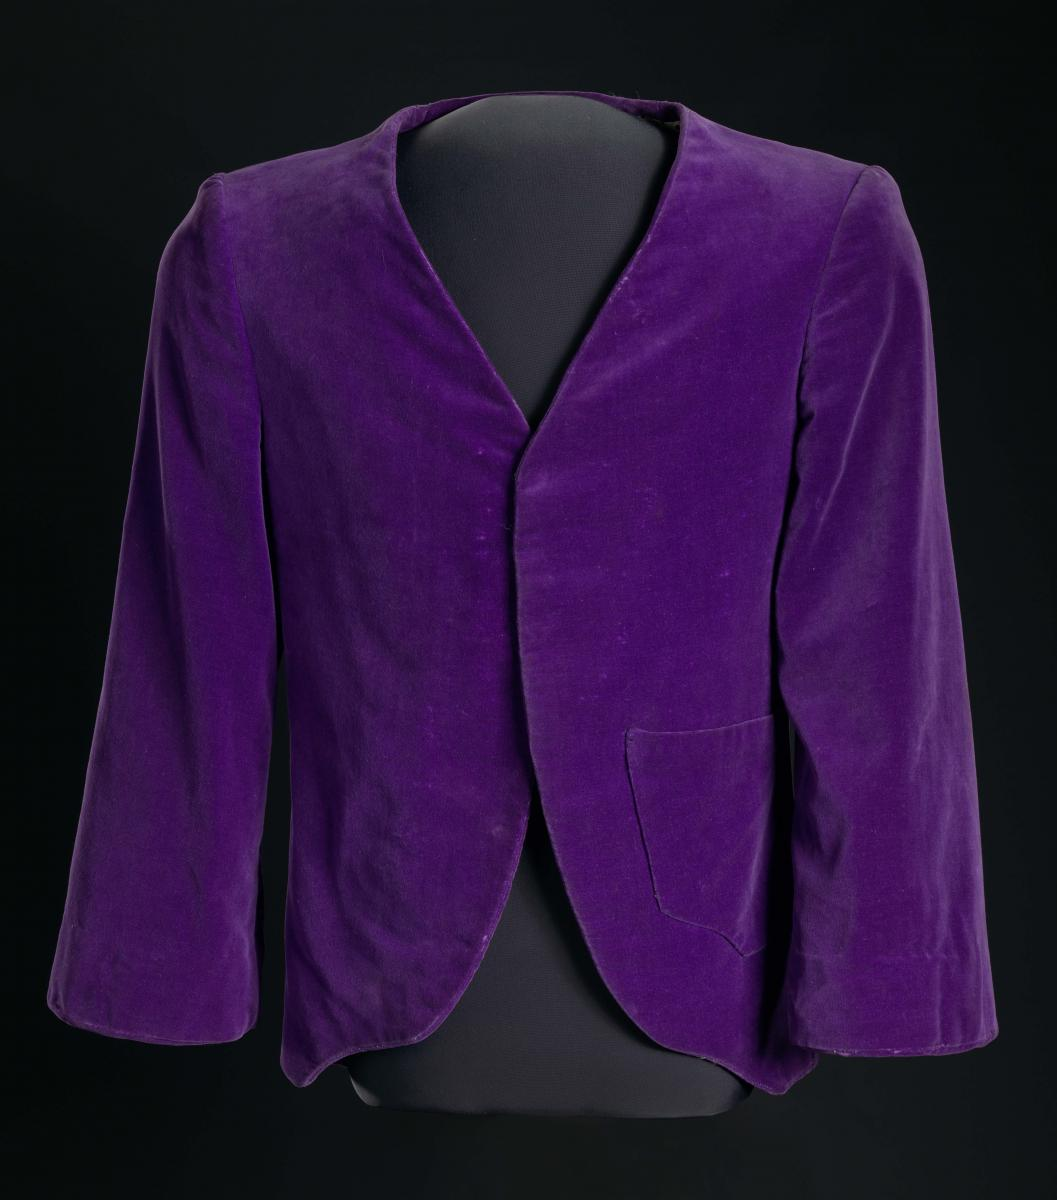 Jacket made by Joe Emsley and worn by Miles Davis, 1960s, Collection of the Smithsonian National Museum of African American History and Culture